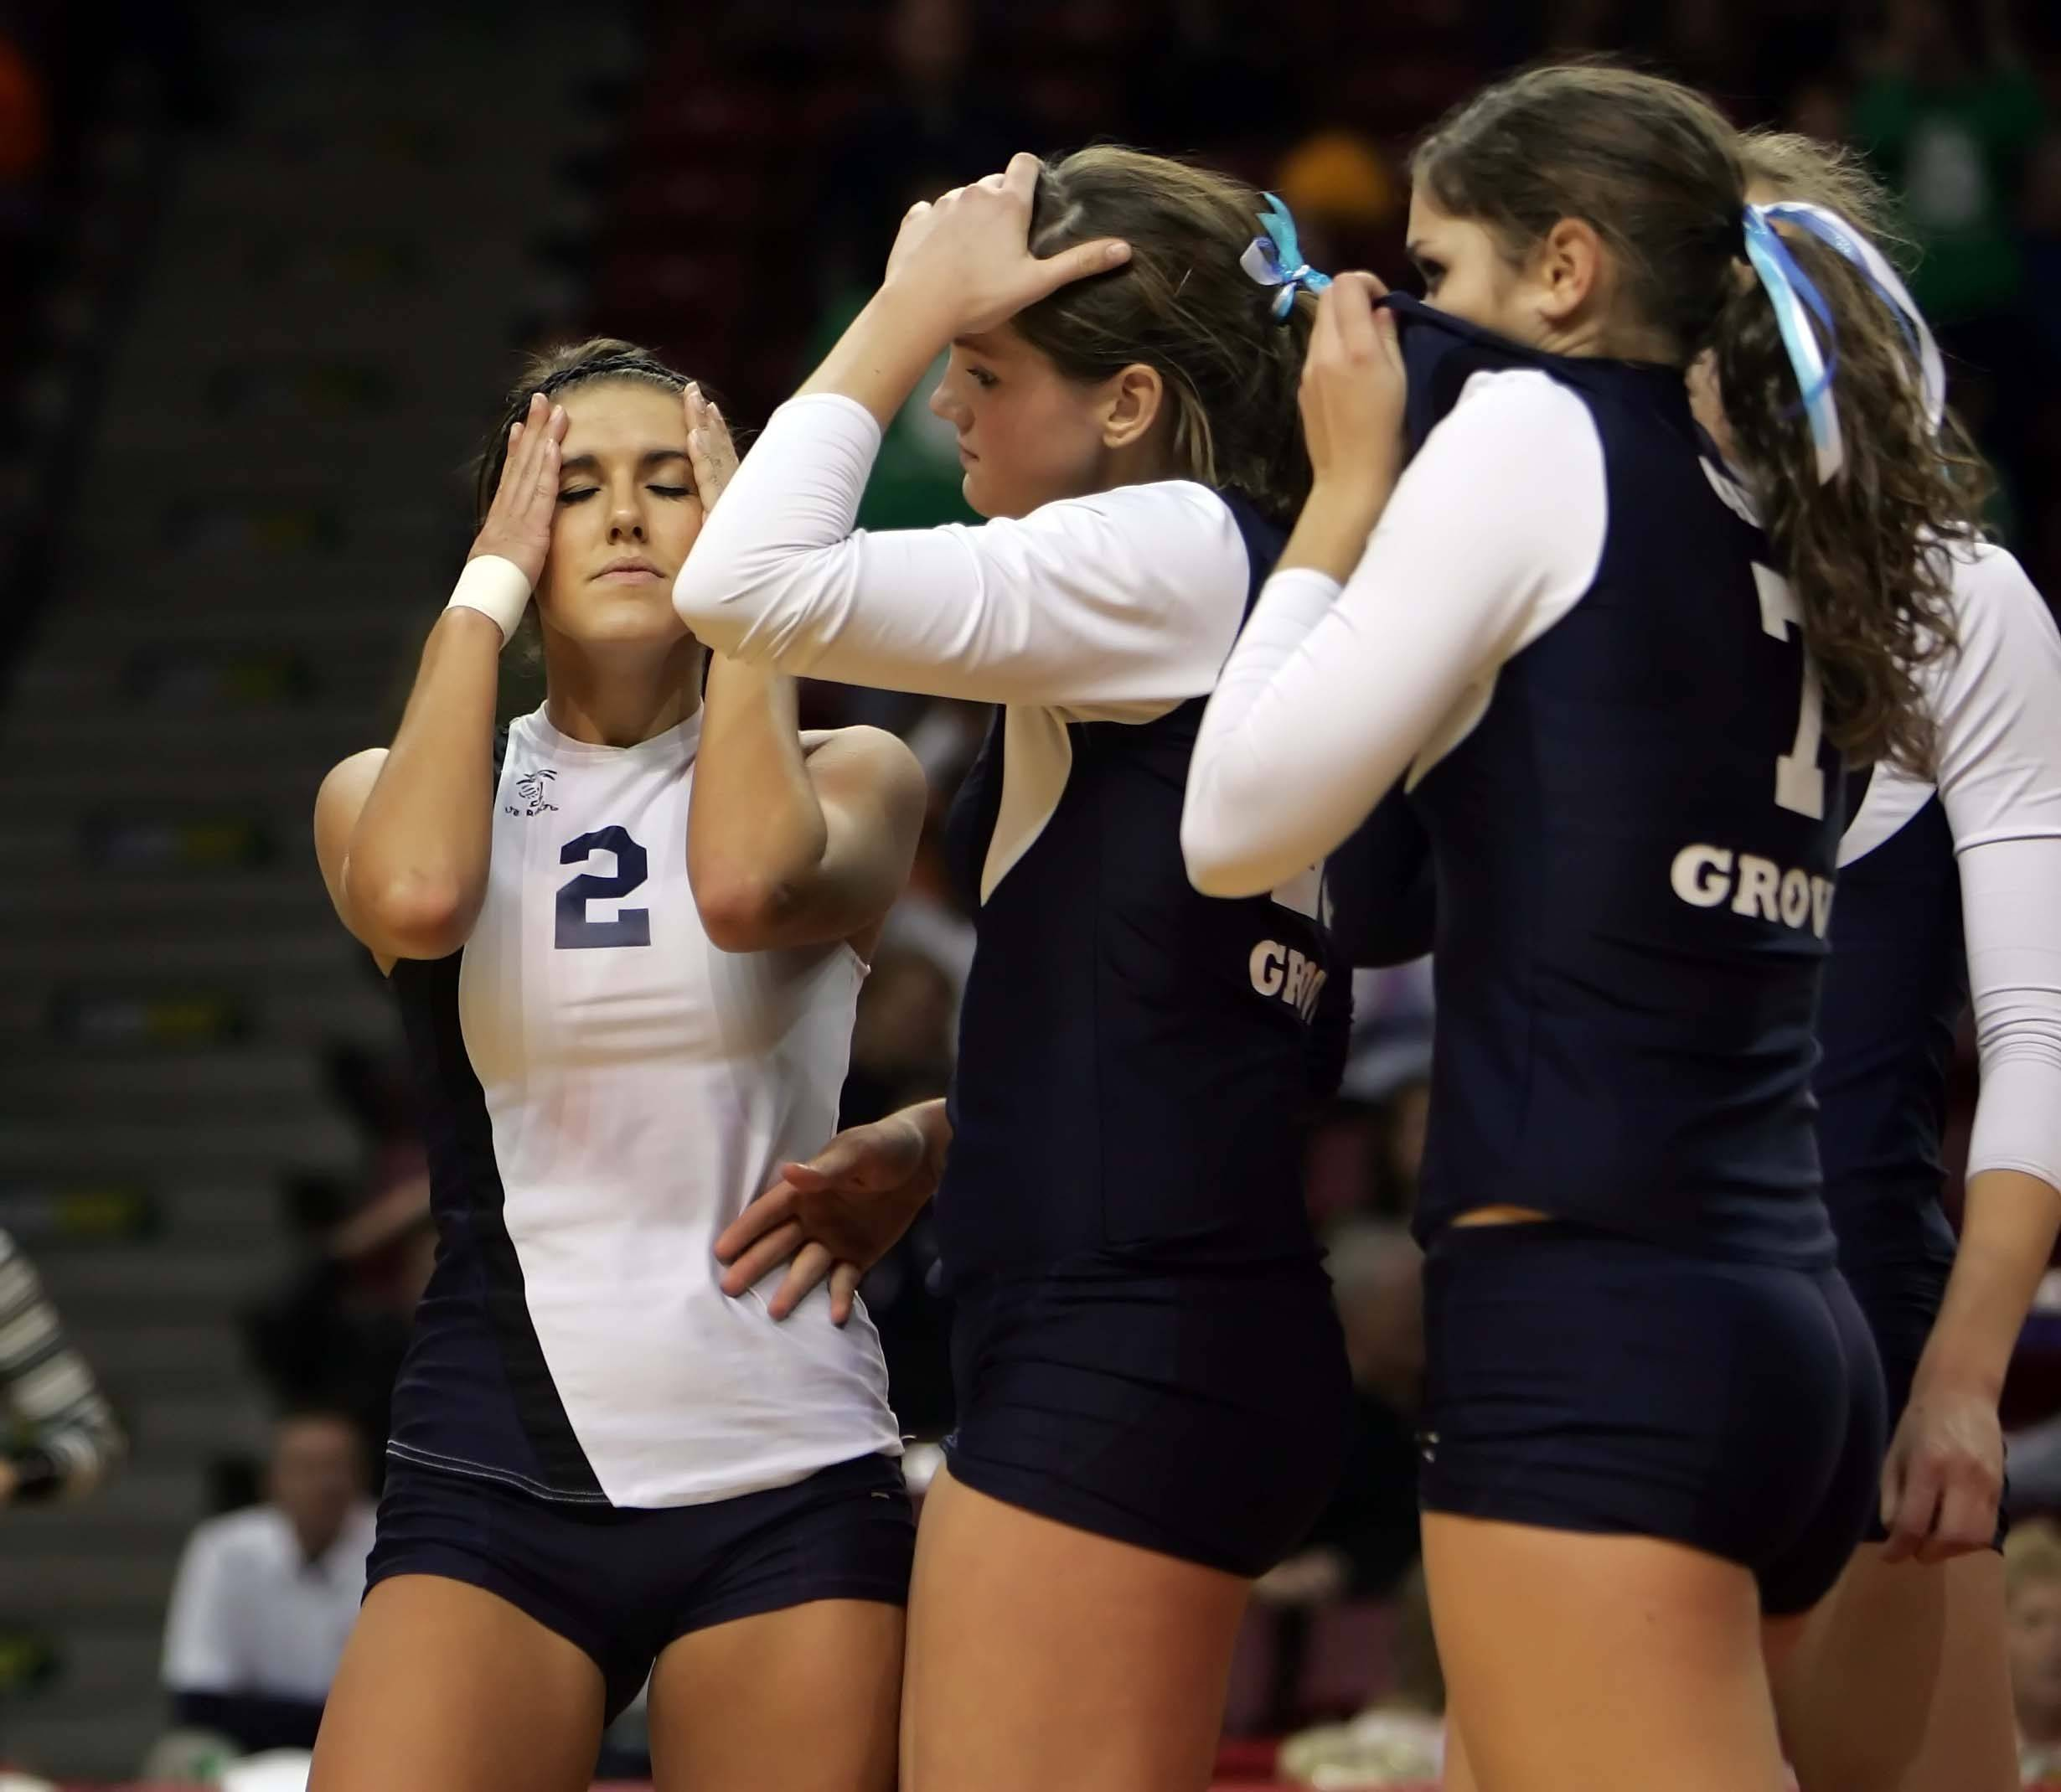 Cary-Grove libero Sam Mainzer, 2, reacts with her teammates after their loss to Lyons in the IHSA Class 4A State championship match Saturday, November 13, 2010 at Redbird Arena in Normal.